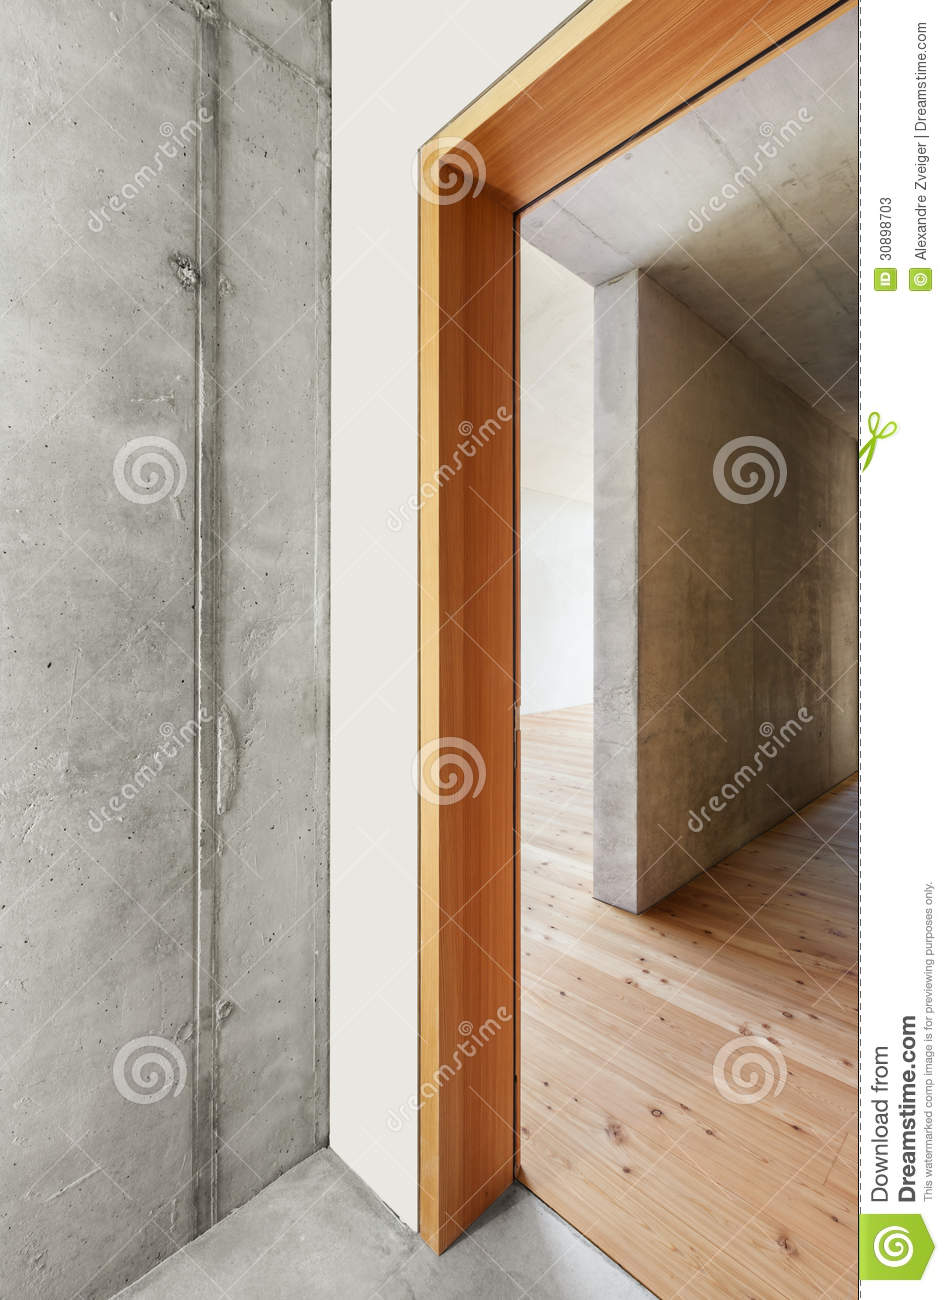 Interior home passage stock photos image 30898703 for Home passage designs